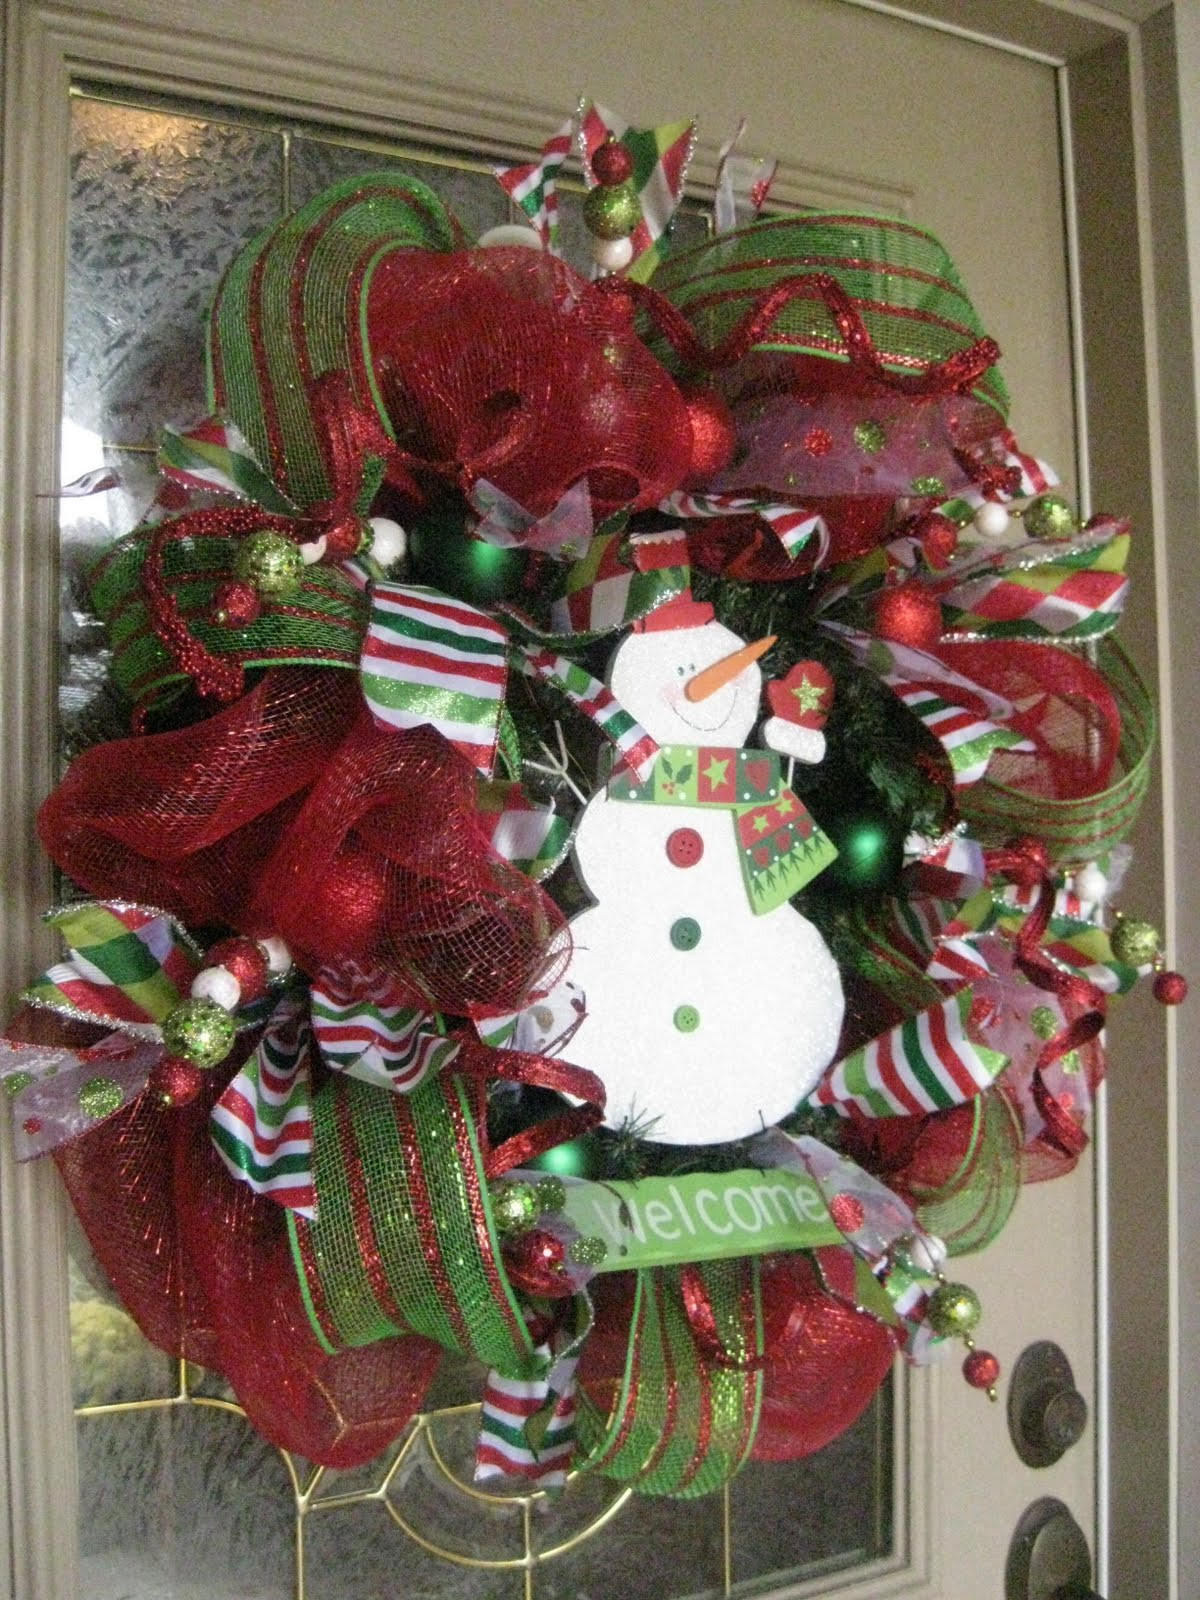 Best ideas about DIY Mesh Christmas Wreath . Save or Pin Always Something 10 DIY Christmas Decor Ideas Now.